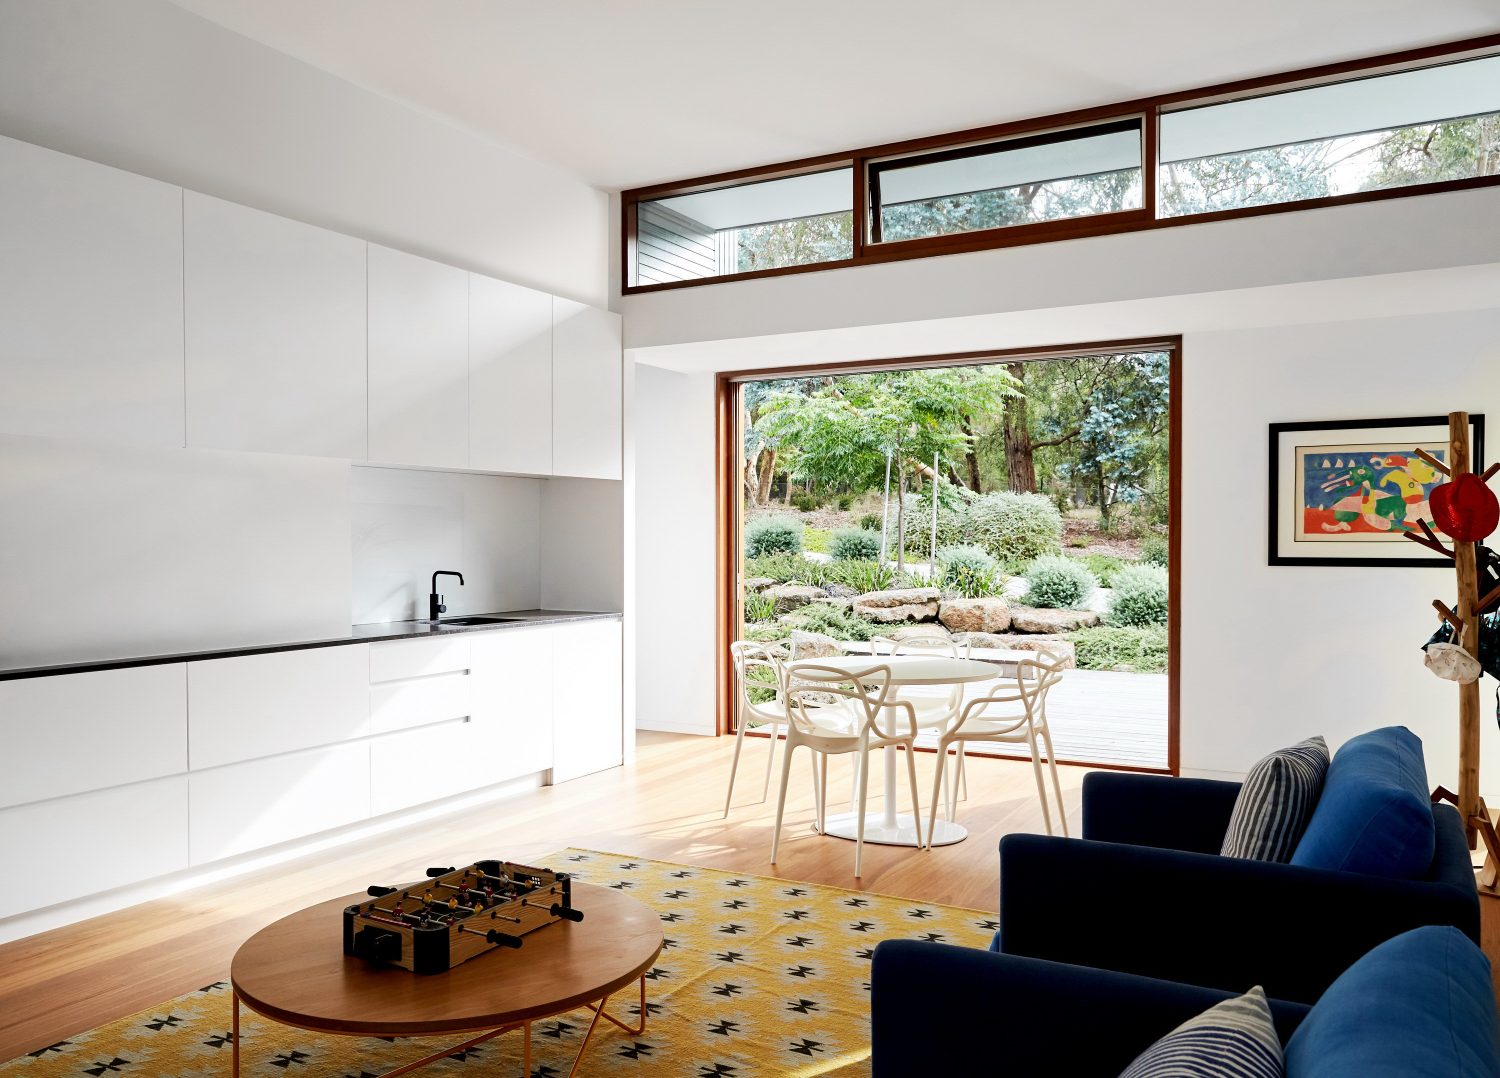 Shoreham House by Tim Spicer Architects